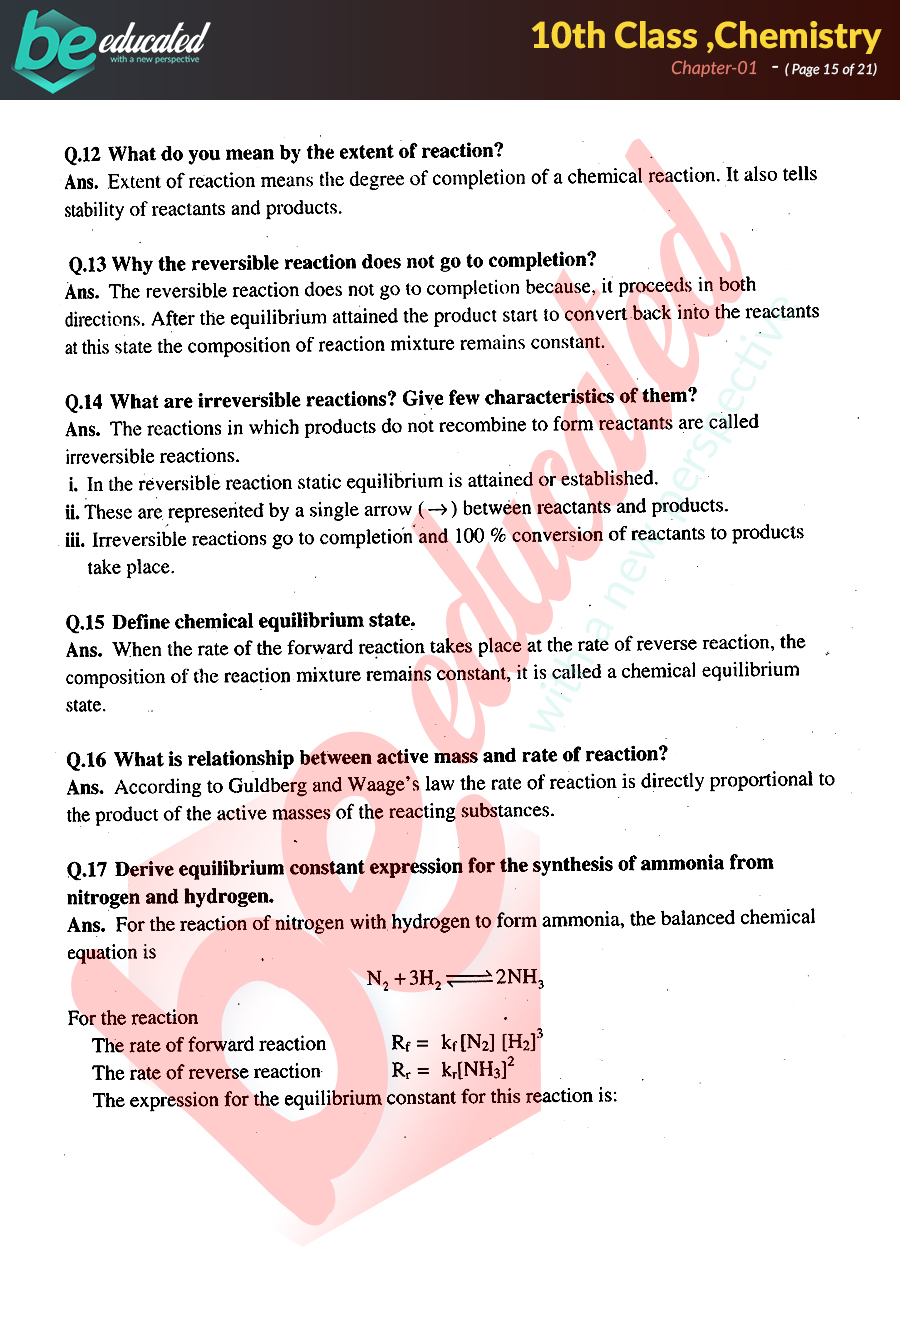 Chapter 1 Chemistry 10th Class Notes - Matric Part 2 Notes